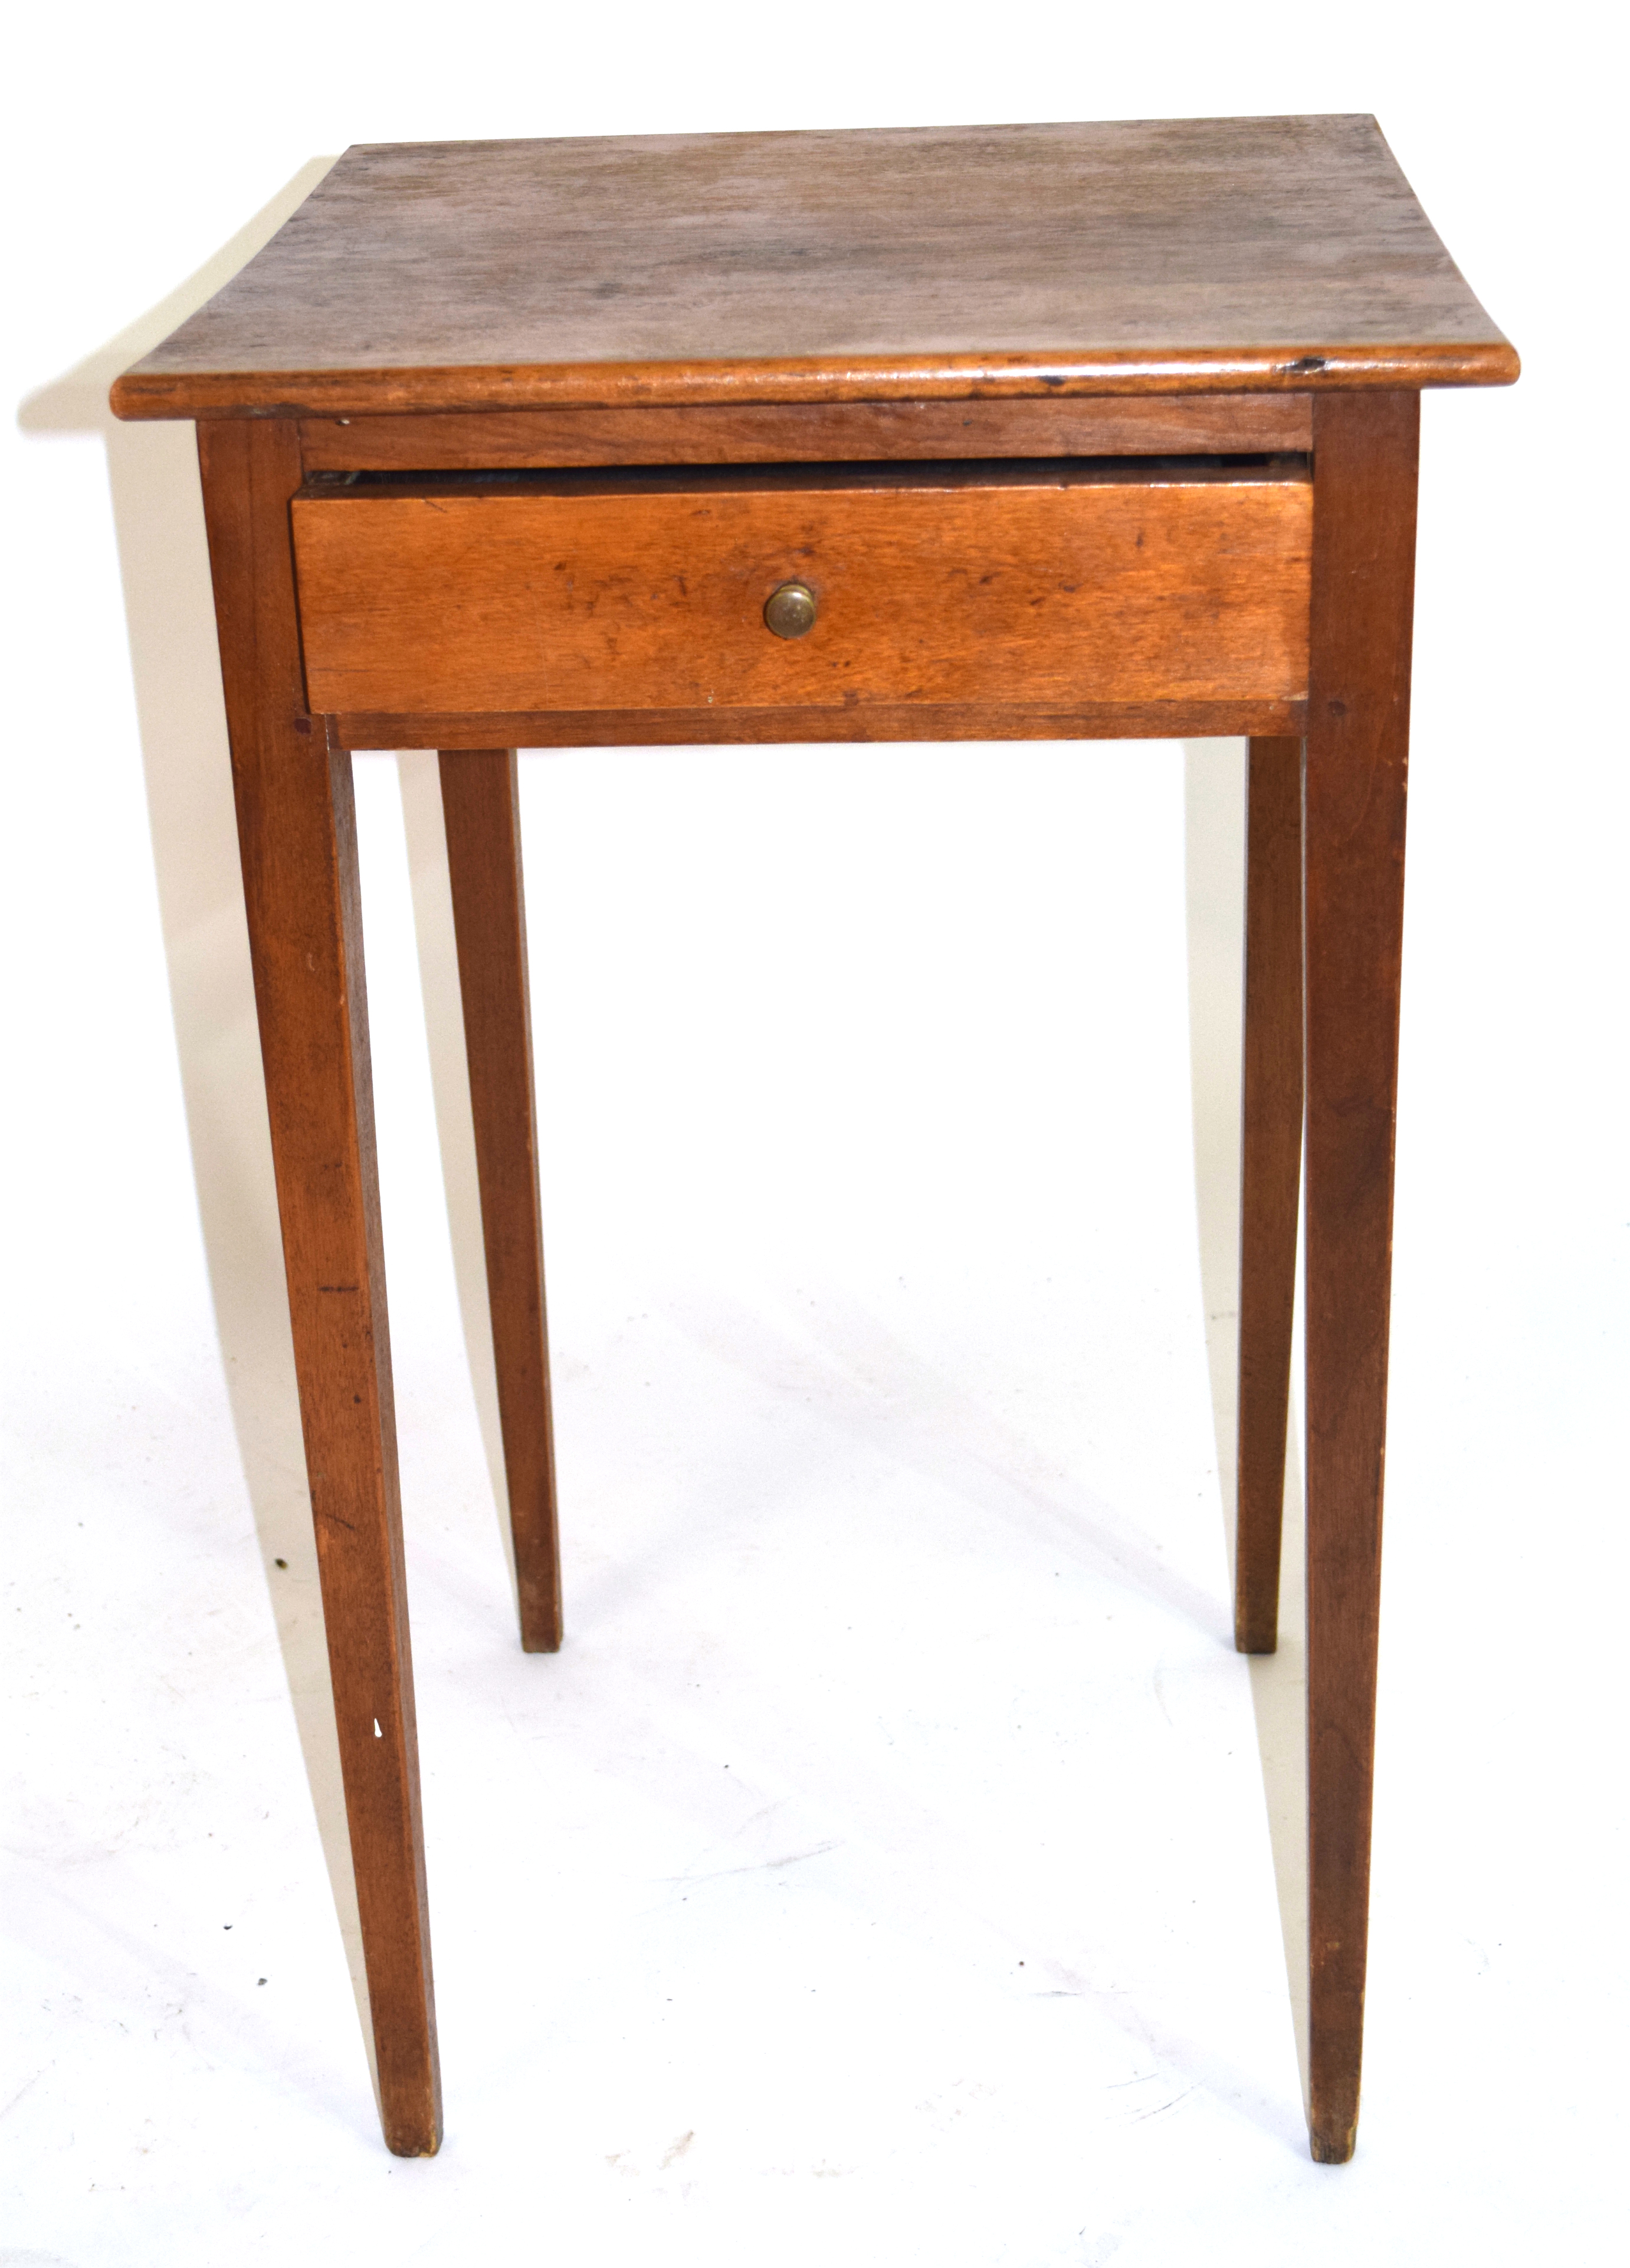 Small square stained table with drawer 70cm in height Condition: Structurally sound but requires